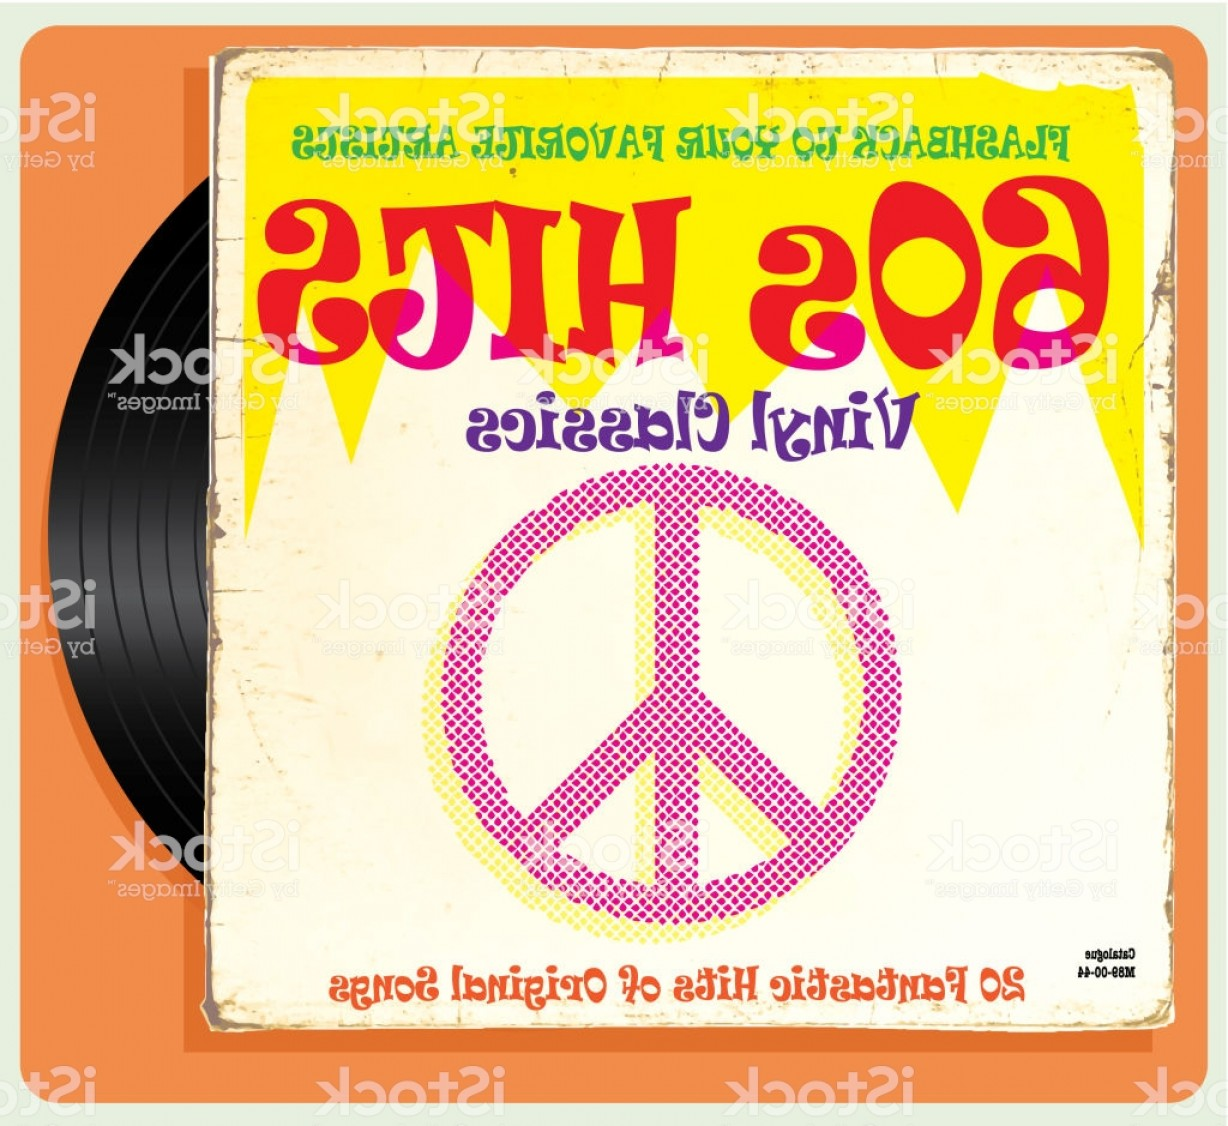 Vector Vinyl Rolls: Vintage Worn S Vinyl Compilation With Peace Sign Gm